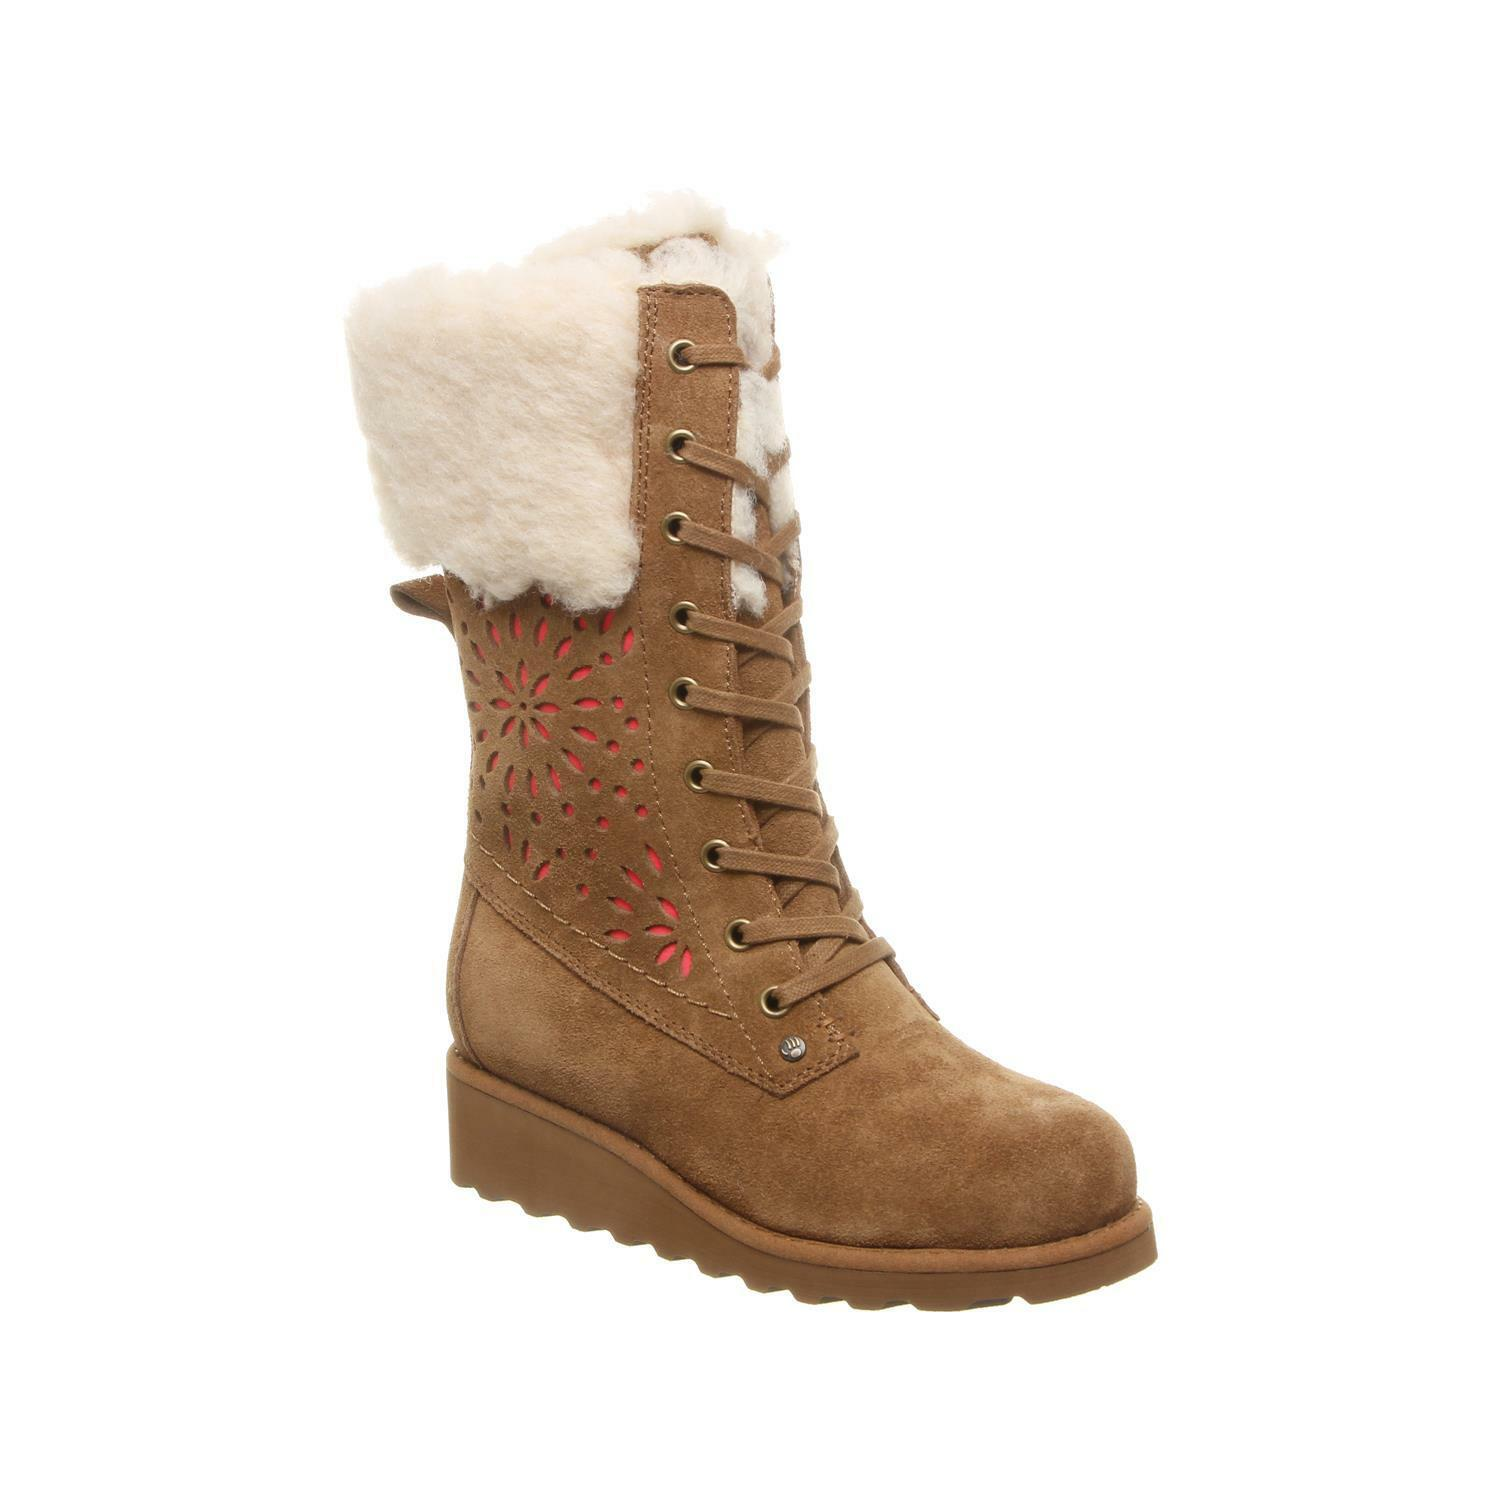 Bearpaw Kylie Youth 9 Inch Kids' avvio - 2144y Hickory Hickory Hickory - 3 M Us Little Kid b94fef